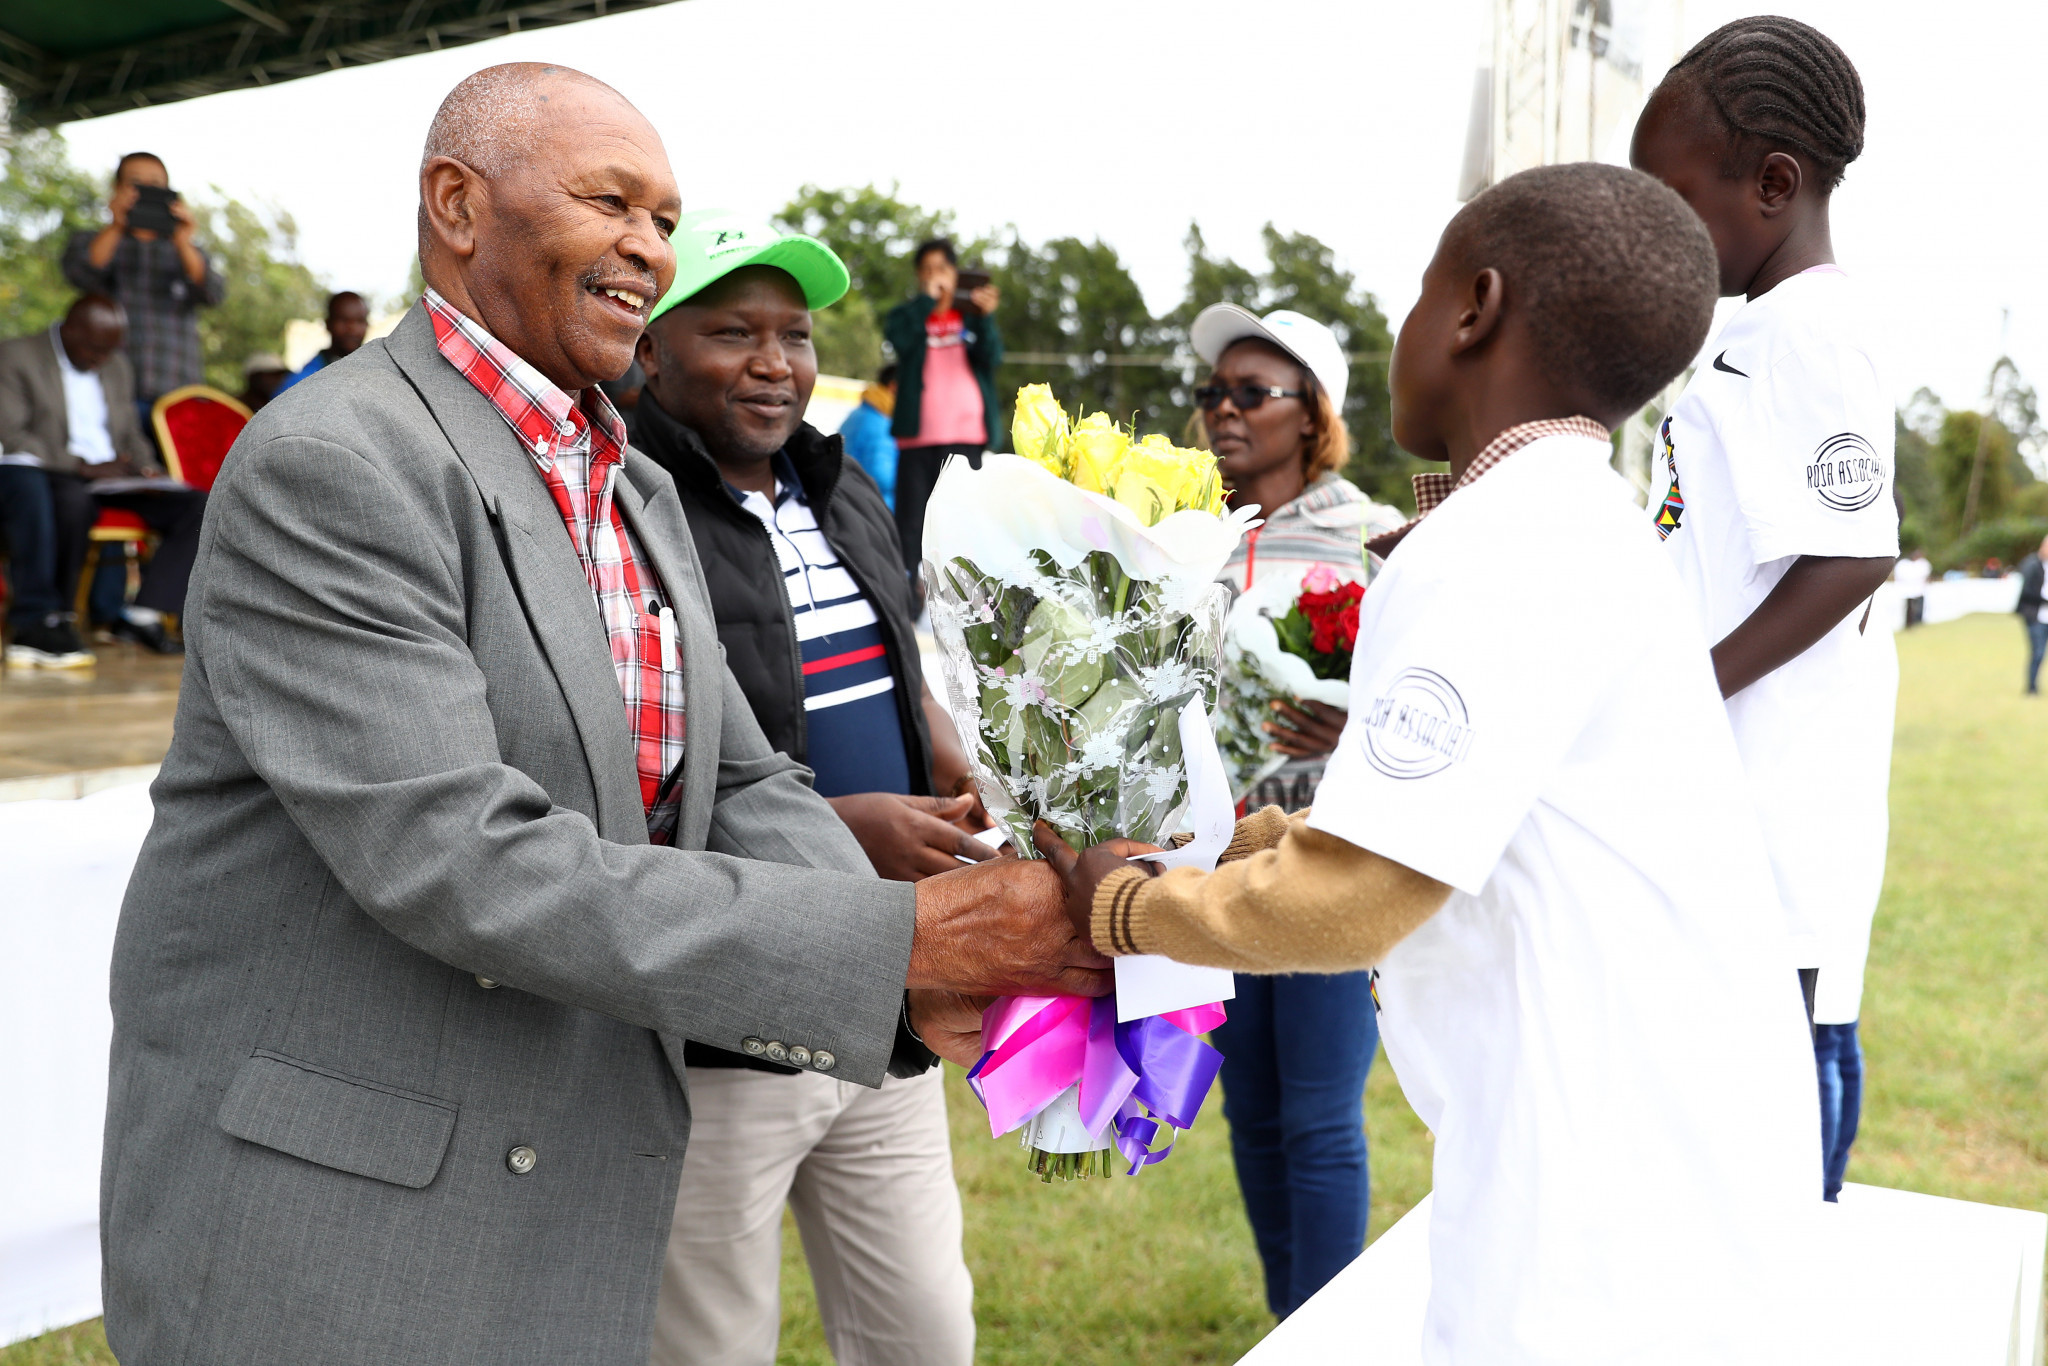 Nairobi Continental Tour event to be named Kipchoge Keino Classic